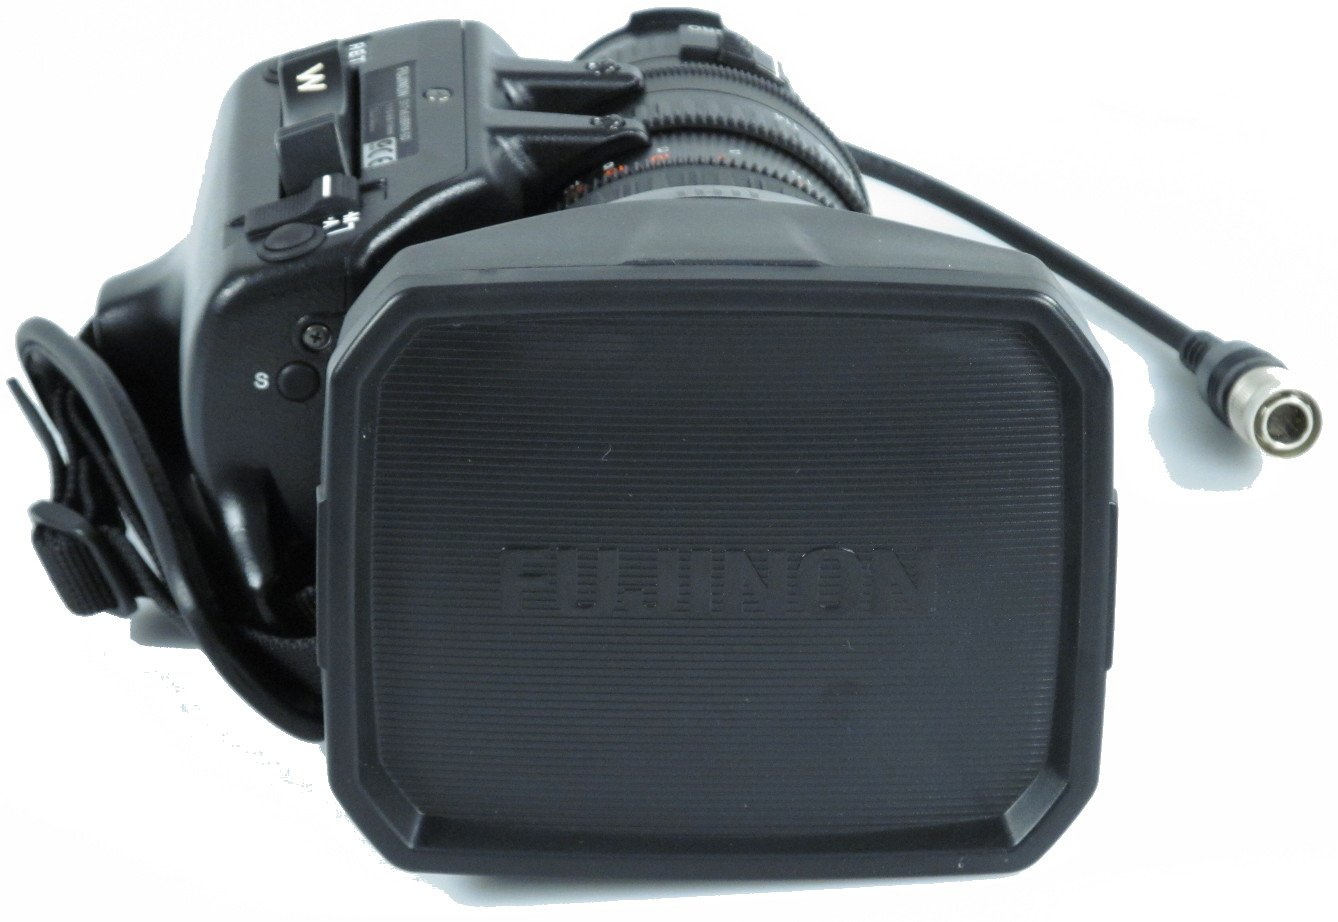 """Standard Definition ENG/EFP Lens with Pigtail Connector for 1/2"""" Chip Format Cameras"""